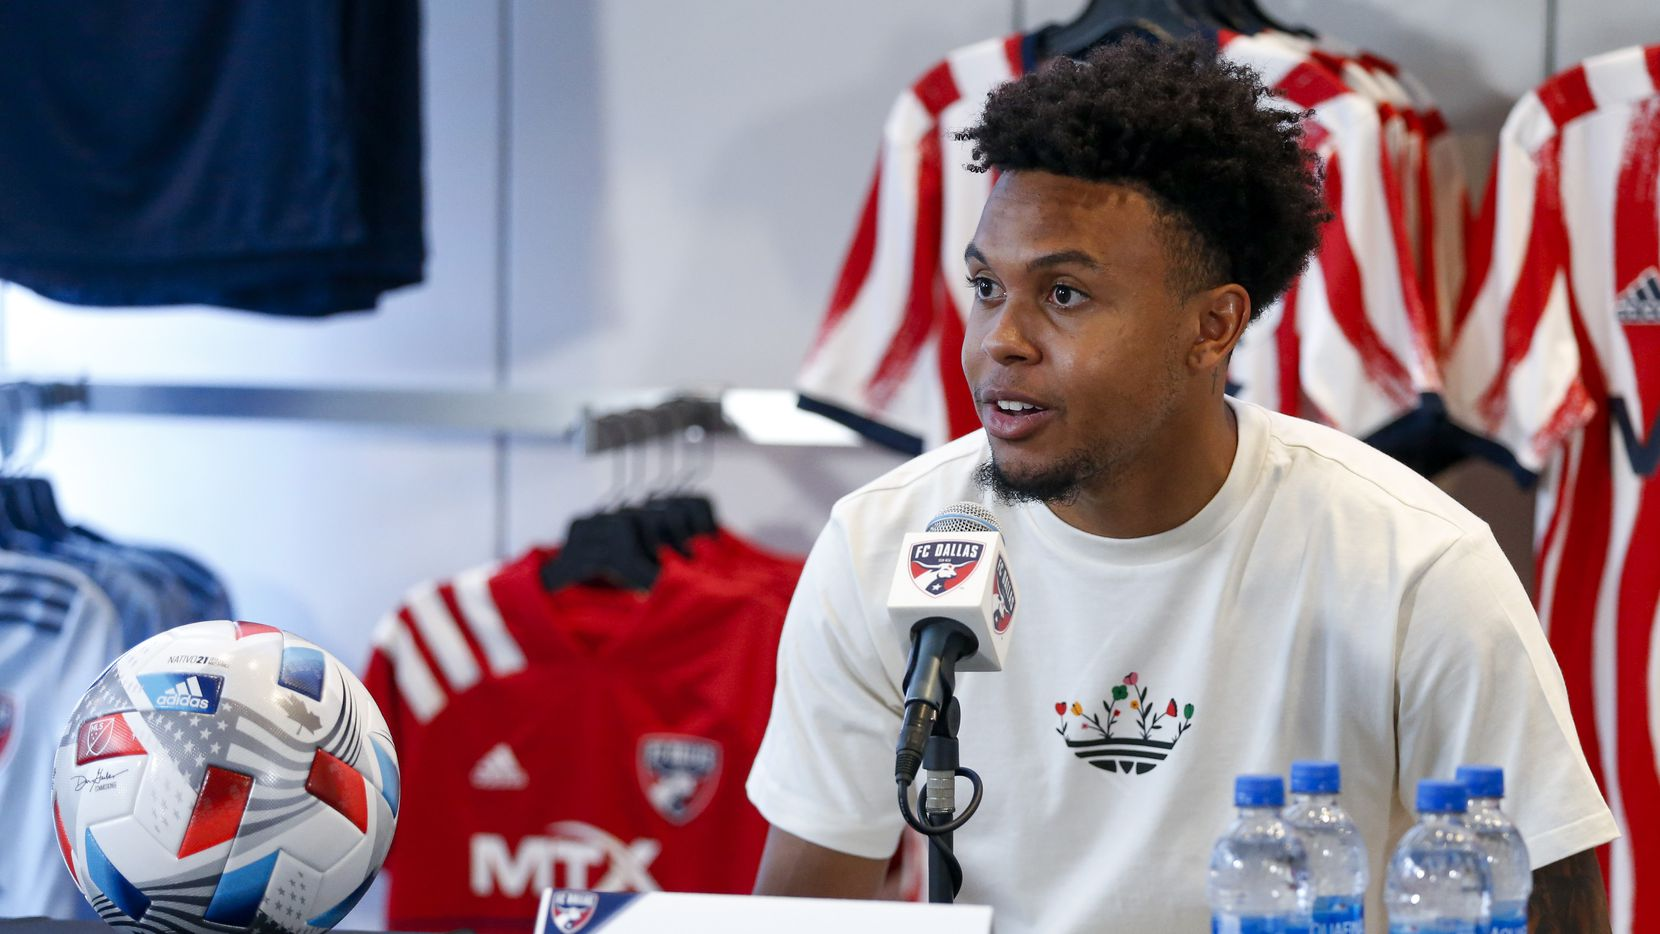 Weston McKennie, Juventus and U.S. Men's National Team midfielder, speaks during a press conference at the National Soccer Hall of Fame at Toyota Stadium on Thursday, June 24, 2021, in Frisco.